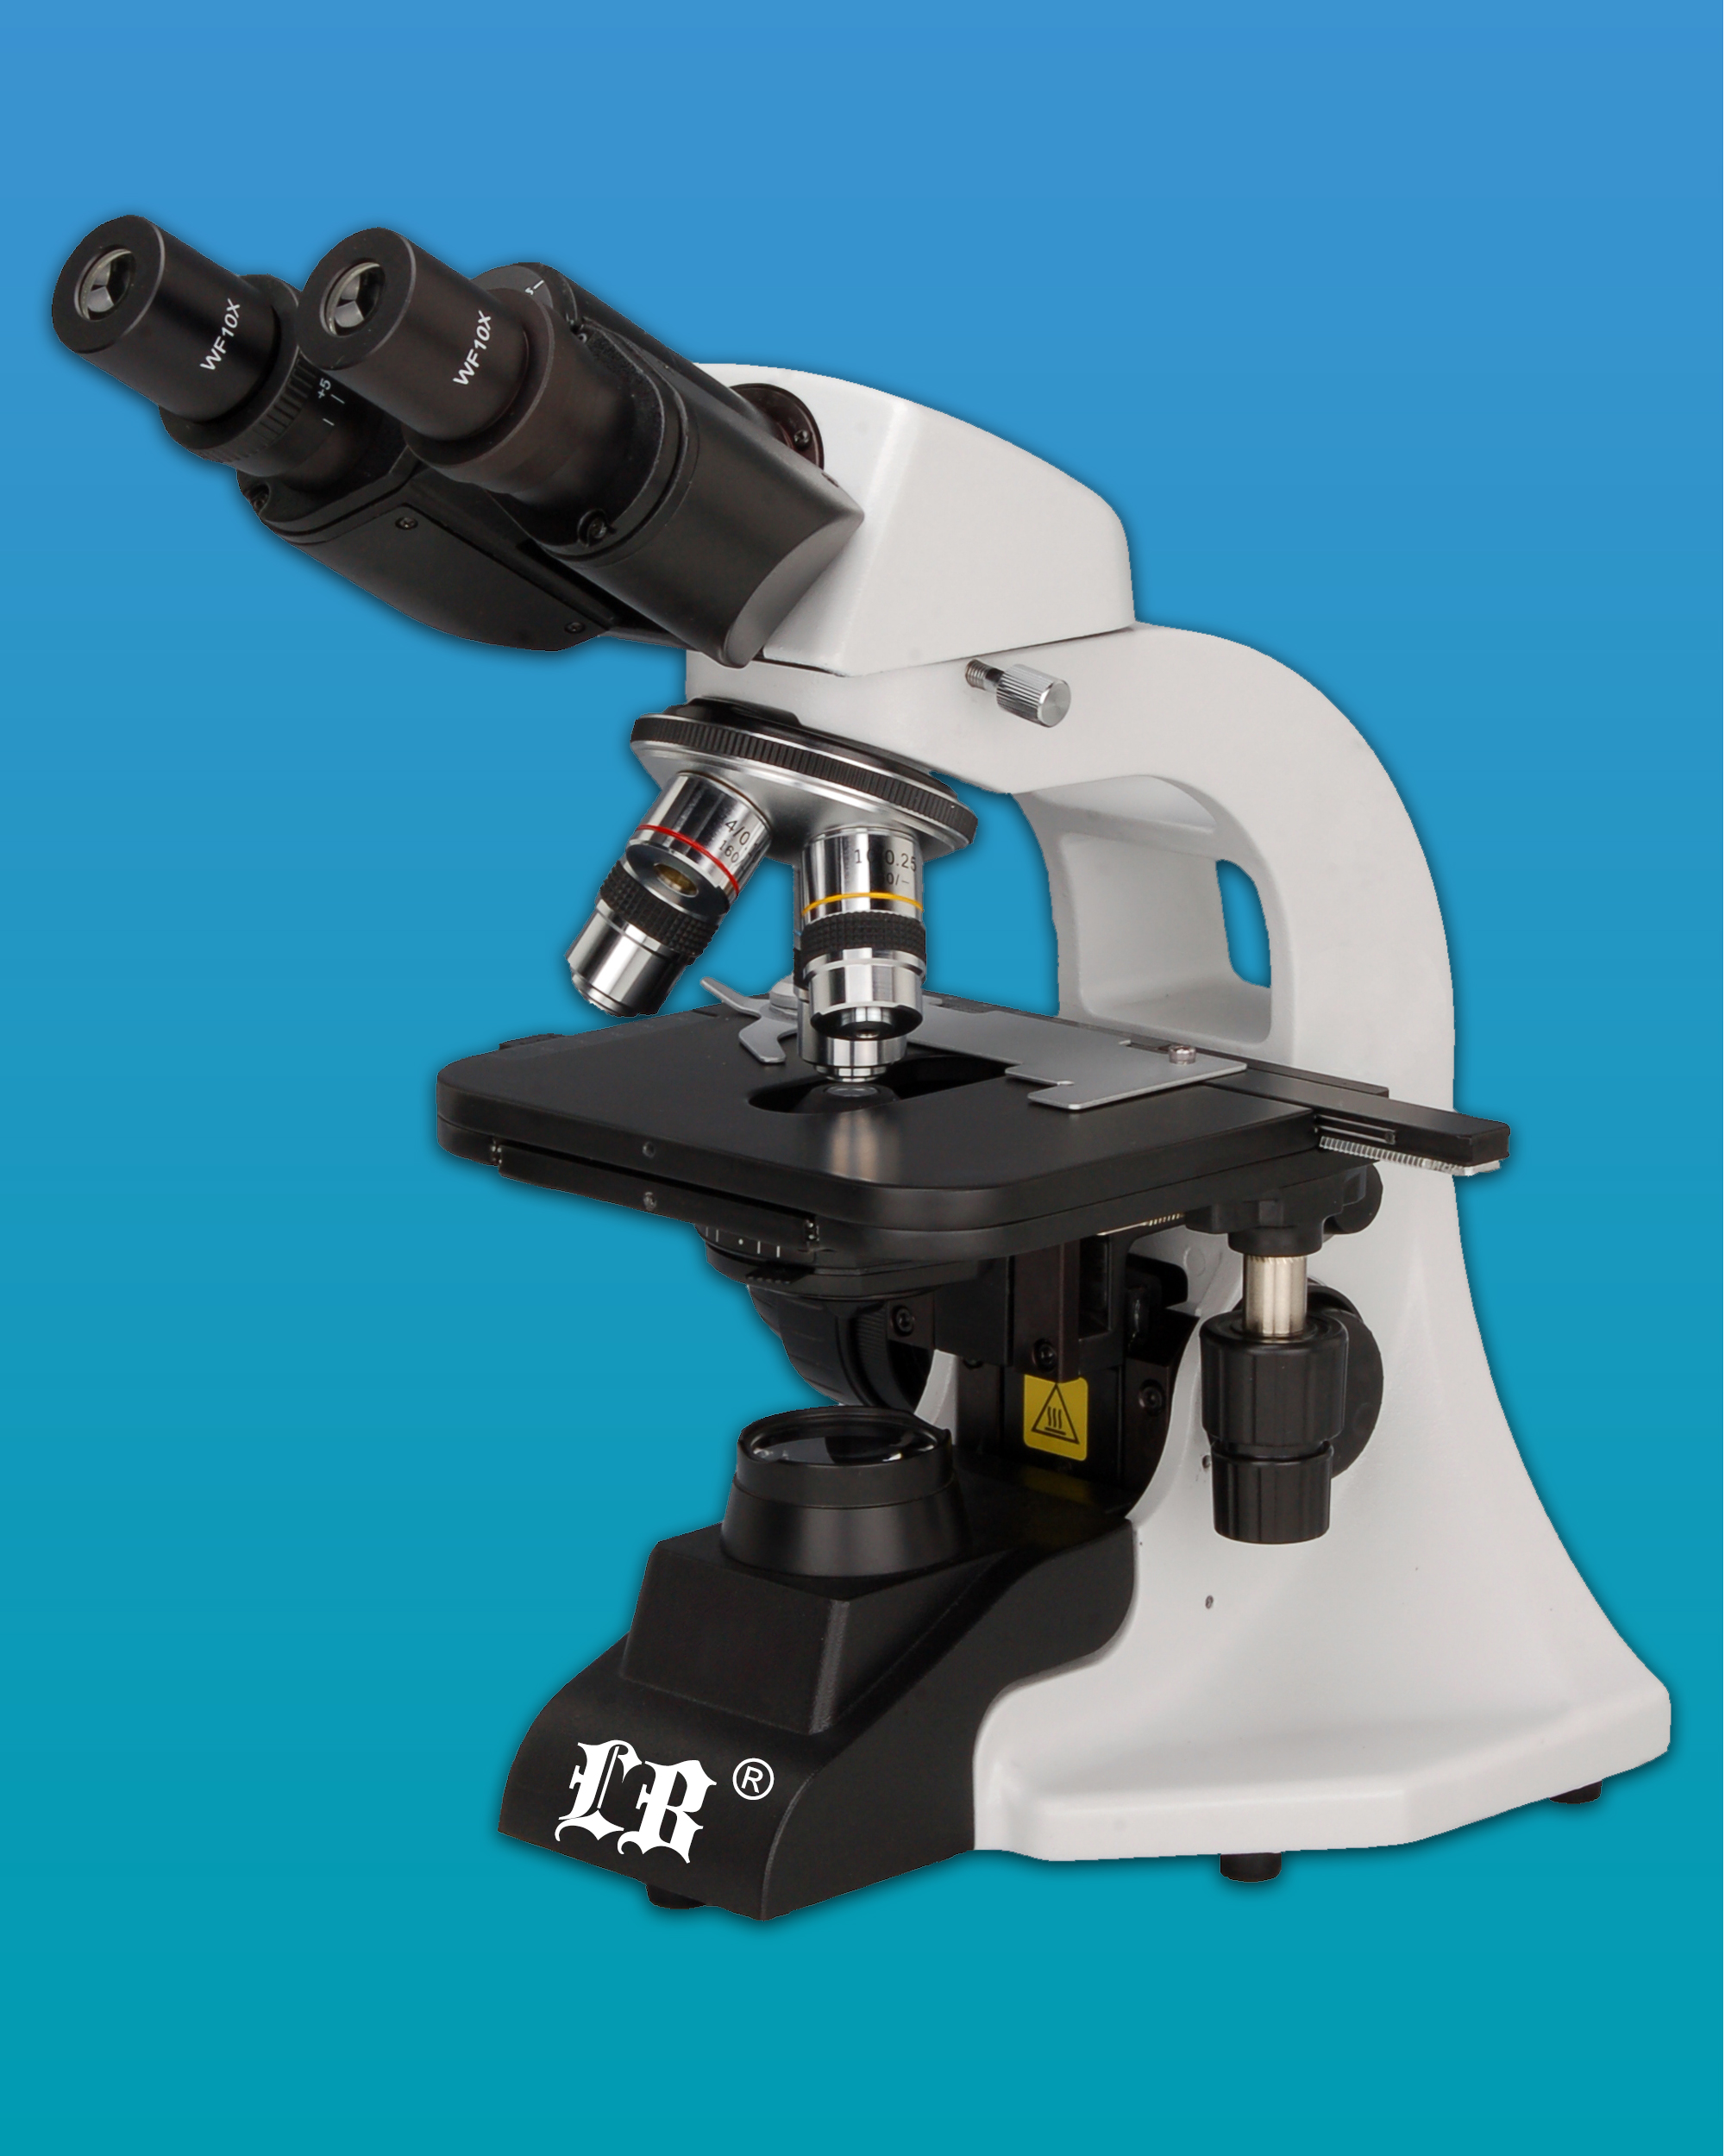 [LB-204] Binocular Biological Microscope w/ Quadruple Nosepiece & LED Illumination